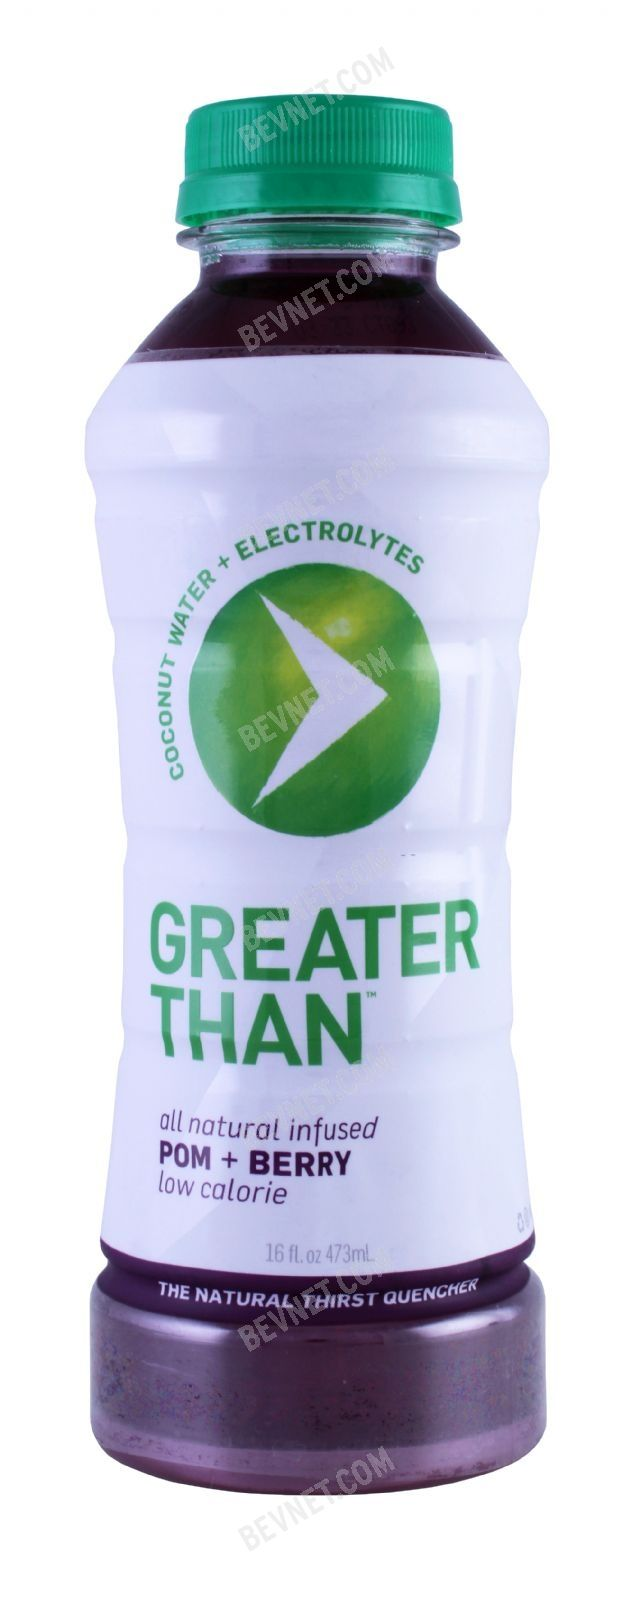 Greater Than: